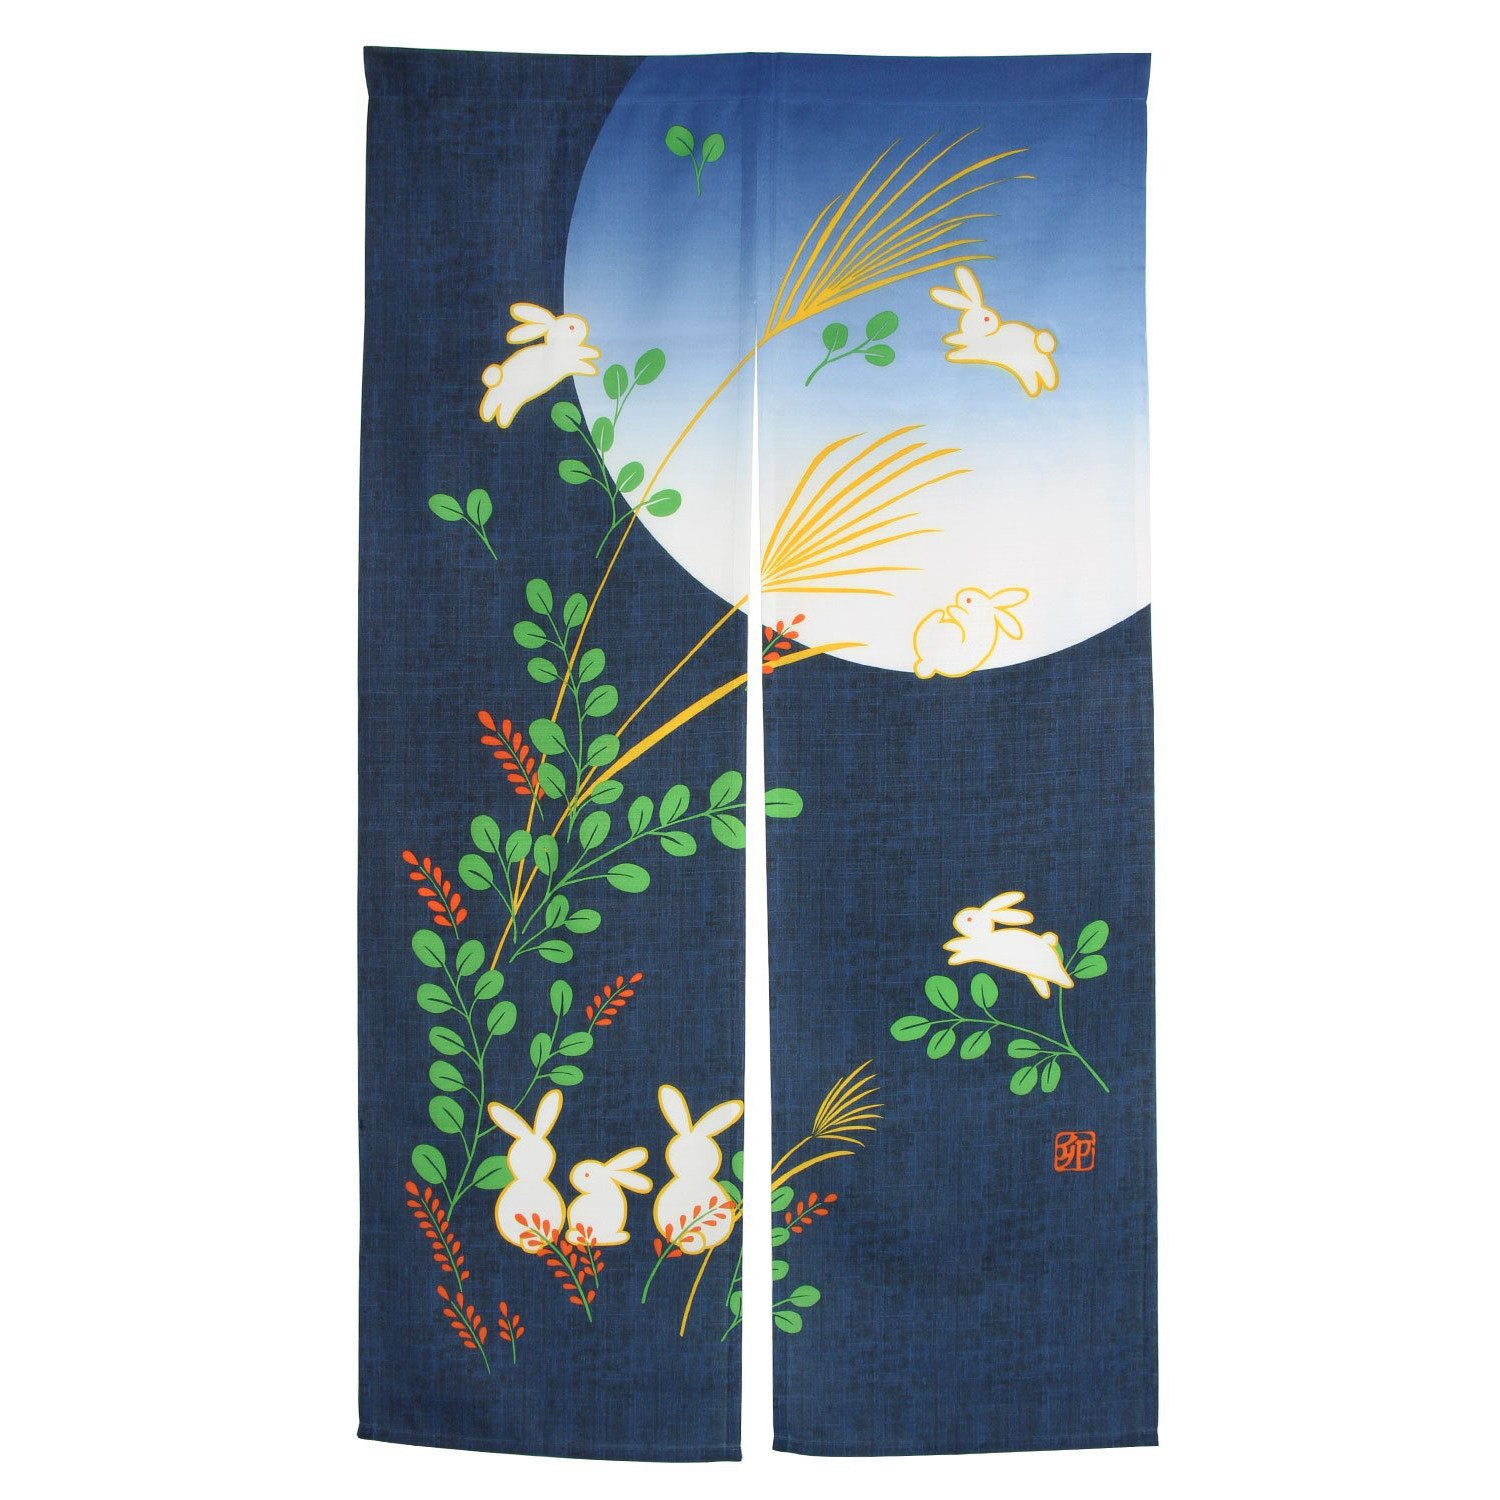 Hot Japanese Doorway Curtain Noren Rabbit Under Moon For Home Decoration 85X150Cm